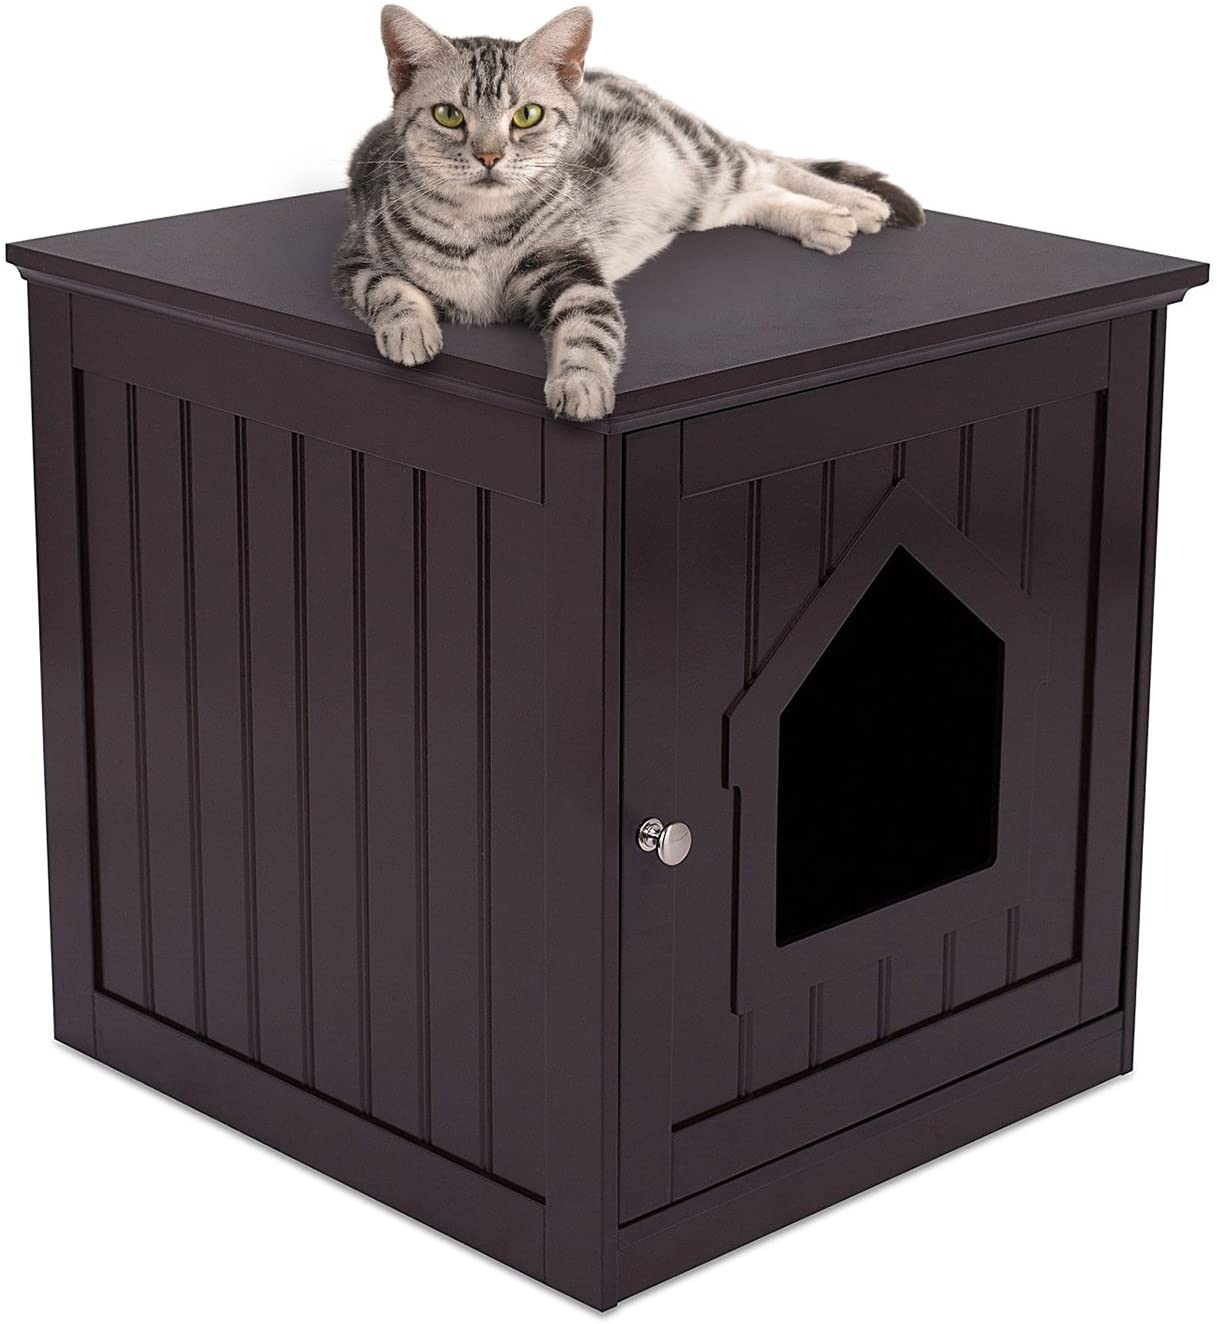 Decorative Cat House Side Table Cat Home Nightstand Indoor Pet Crate Litter Box Enclosure